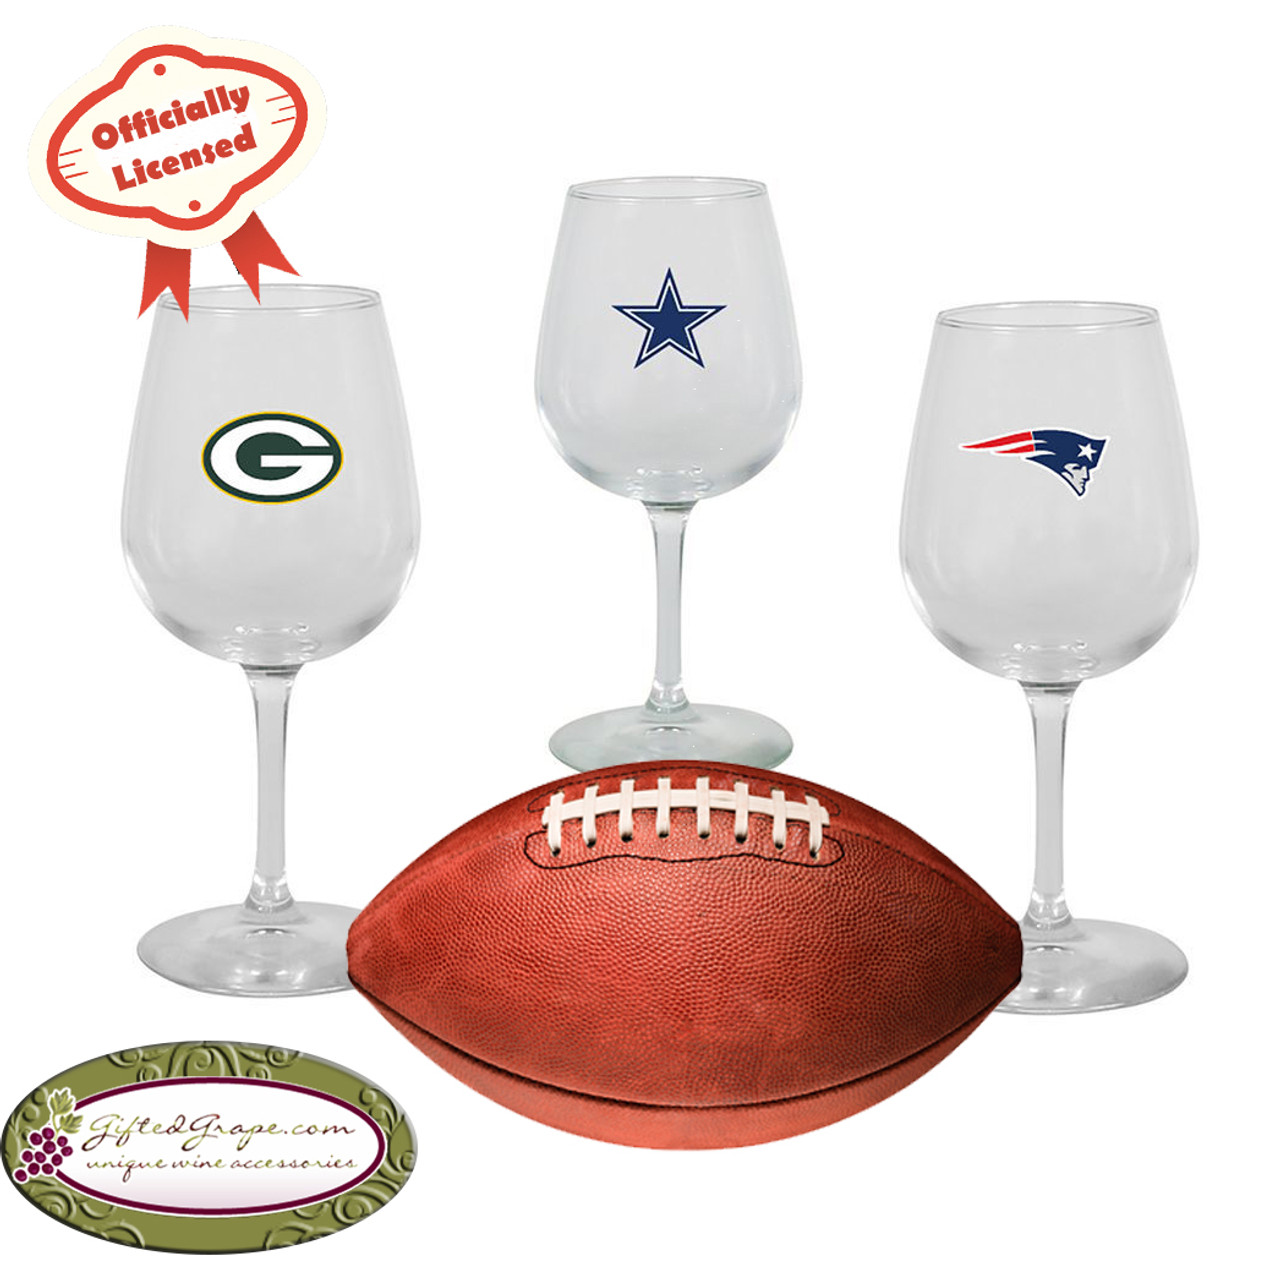 NFL Team Wine Glasses - Officially Licensed Wine Accessories